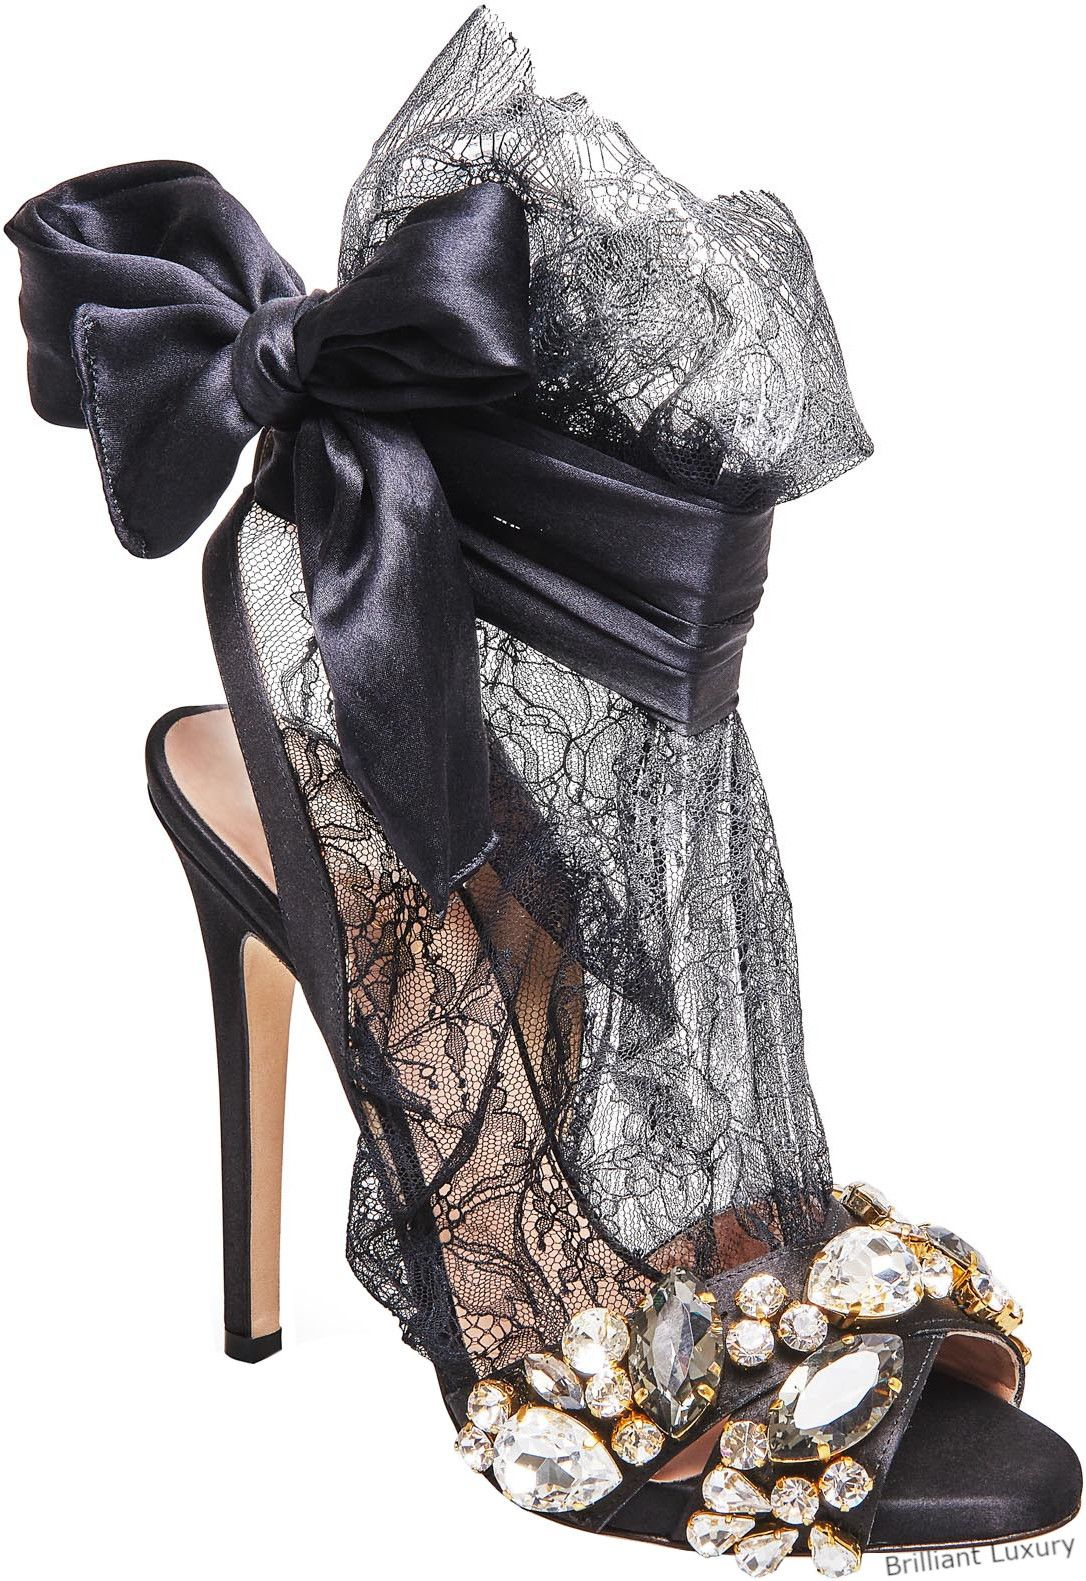 eaedc48ec281a Brilliant Luxury│NEW IN│Gedebe bejeweled satin lace sandals in black